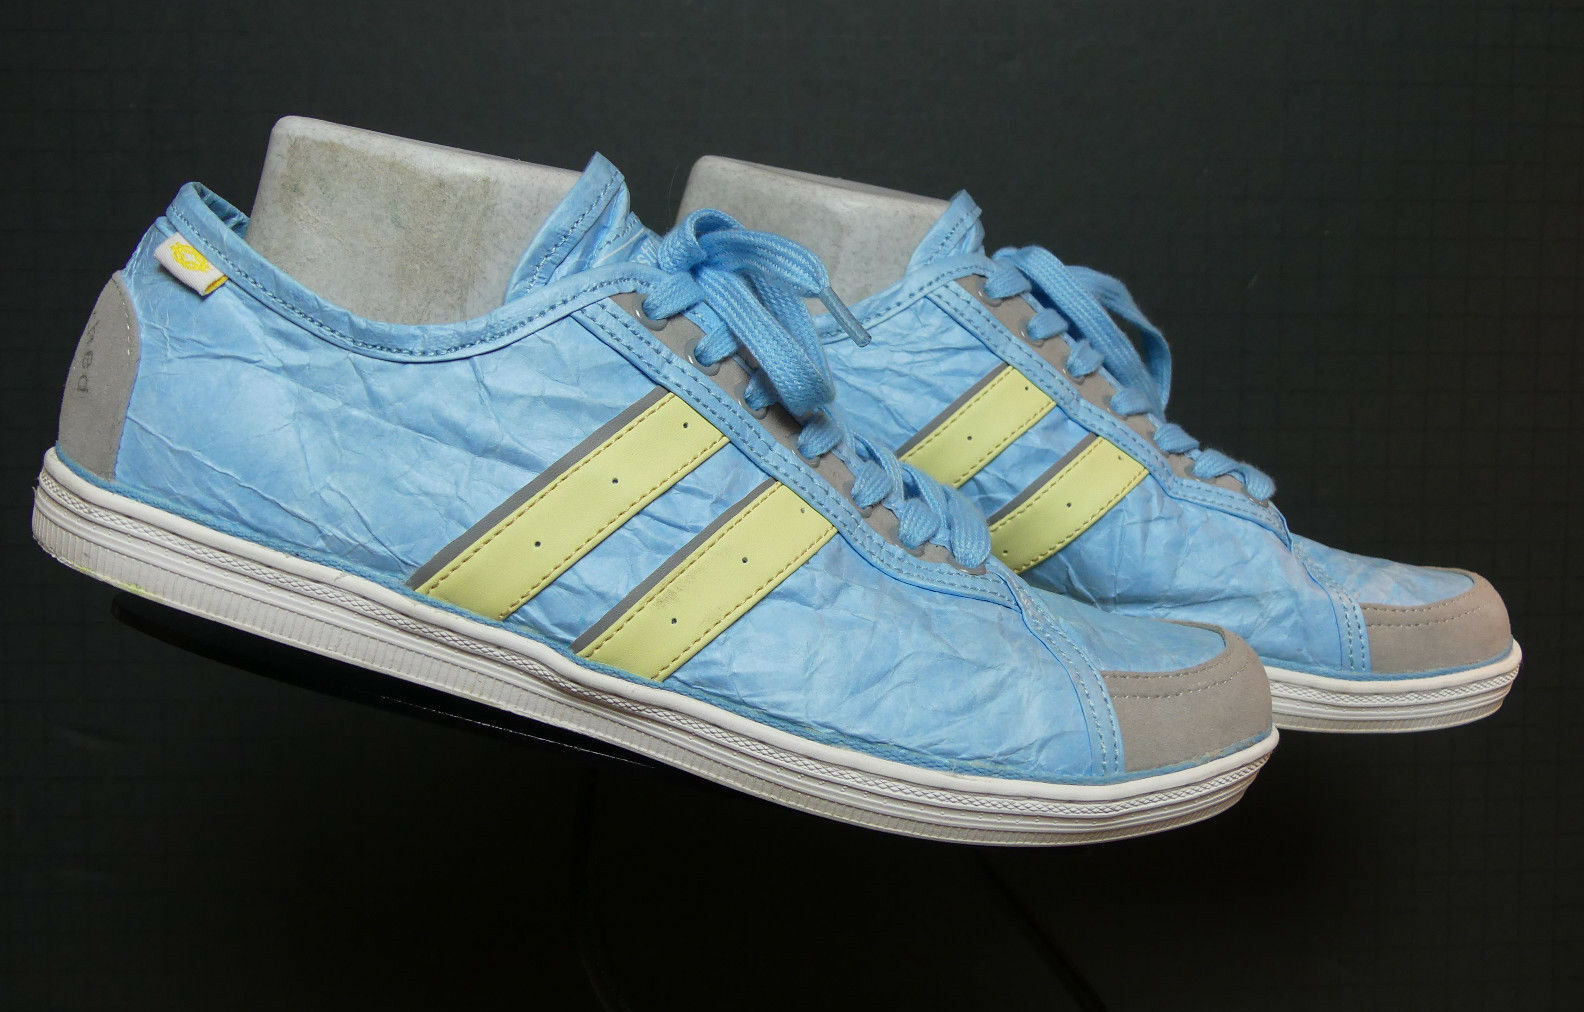 Women's UNSTITCHED UTILITIES bluee and Yellow Tyvek Suede Trim Sneakers 10 MINT